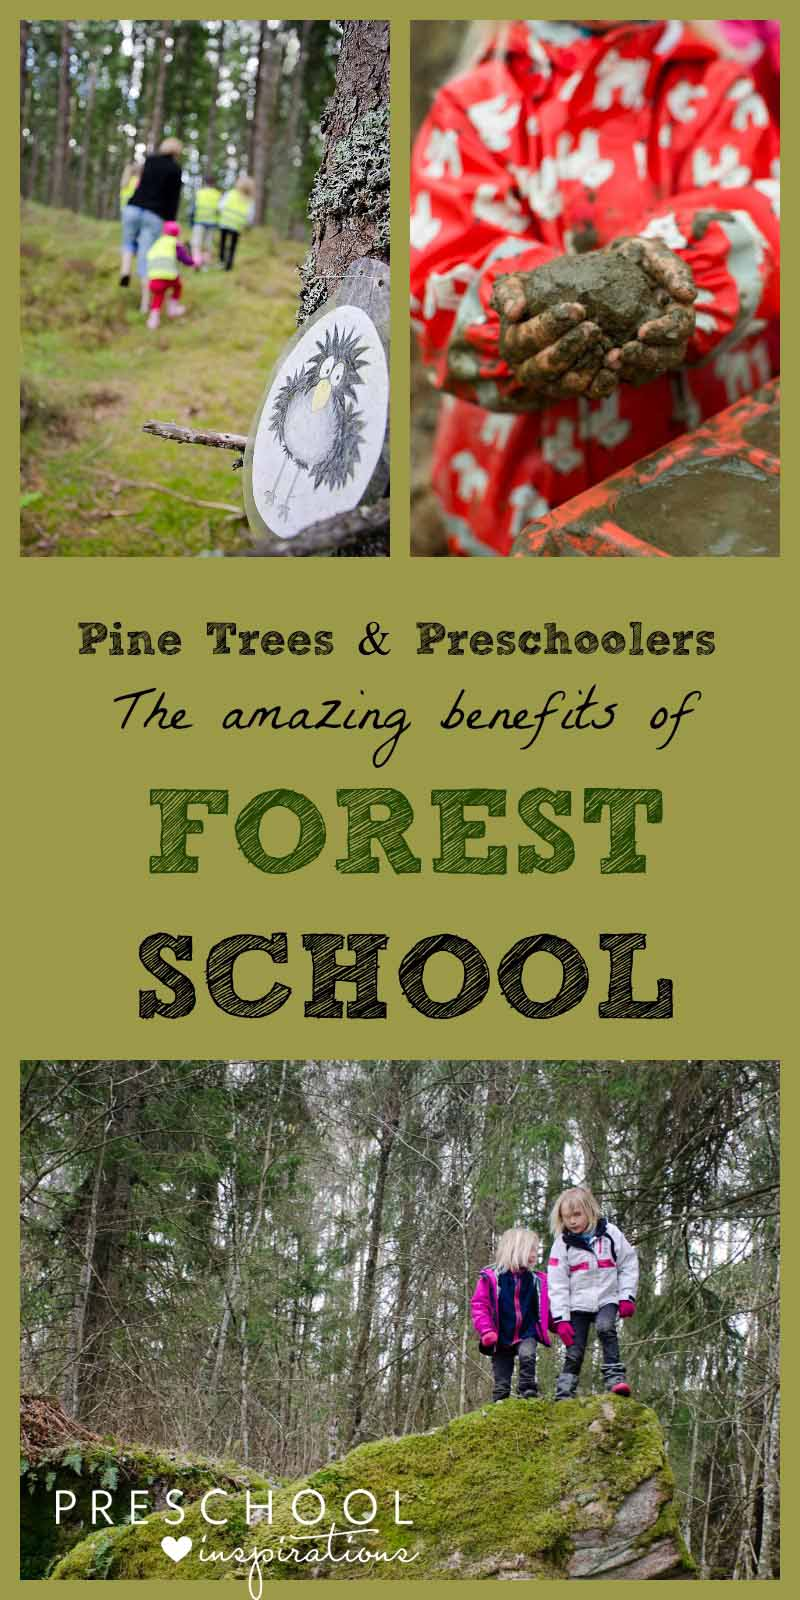 Pine Trees and Preschoolers. The Amazing Benefits of Forest School. The Scandinavian approach to outdoor learning and play is getting popular in the U.S. #preschool #prek #preschoolideas #preschoolplanning #forestschool #outdoorplay #outdoorkids